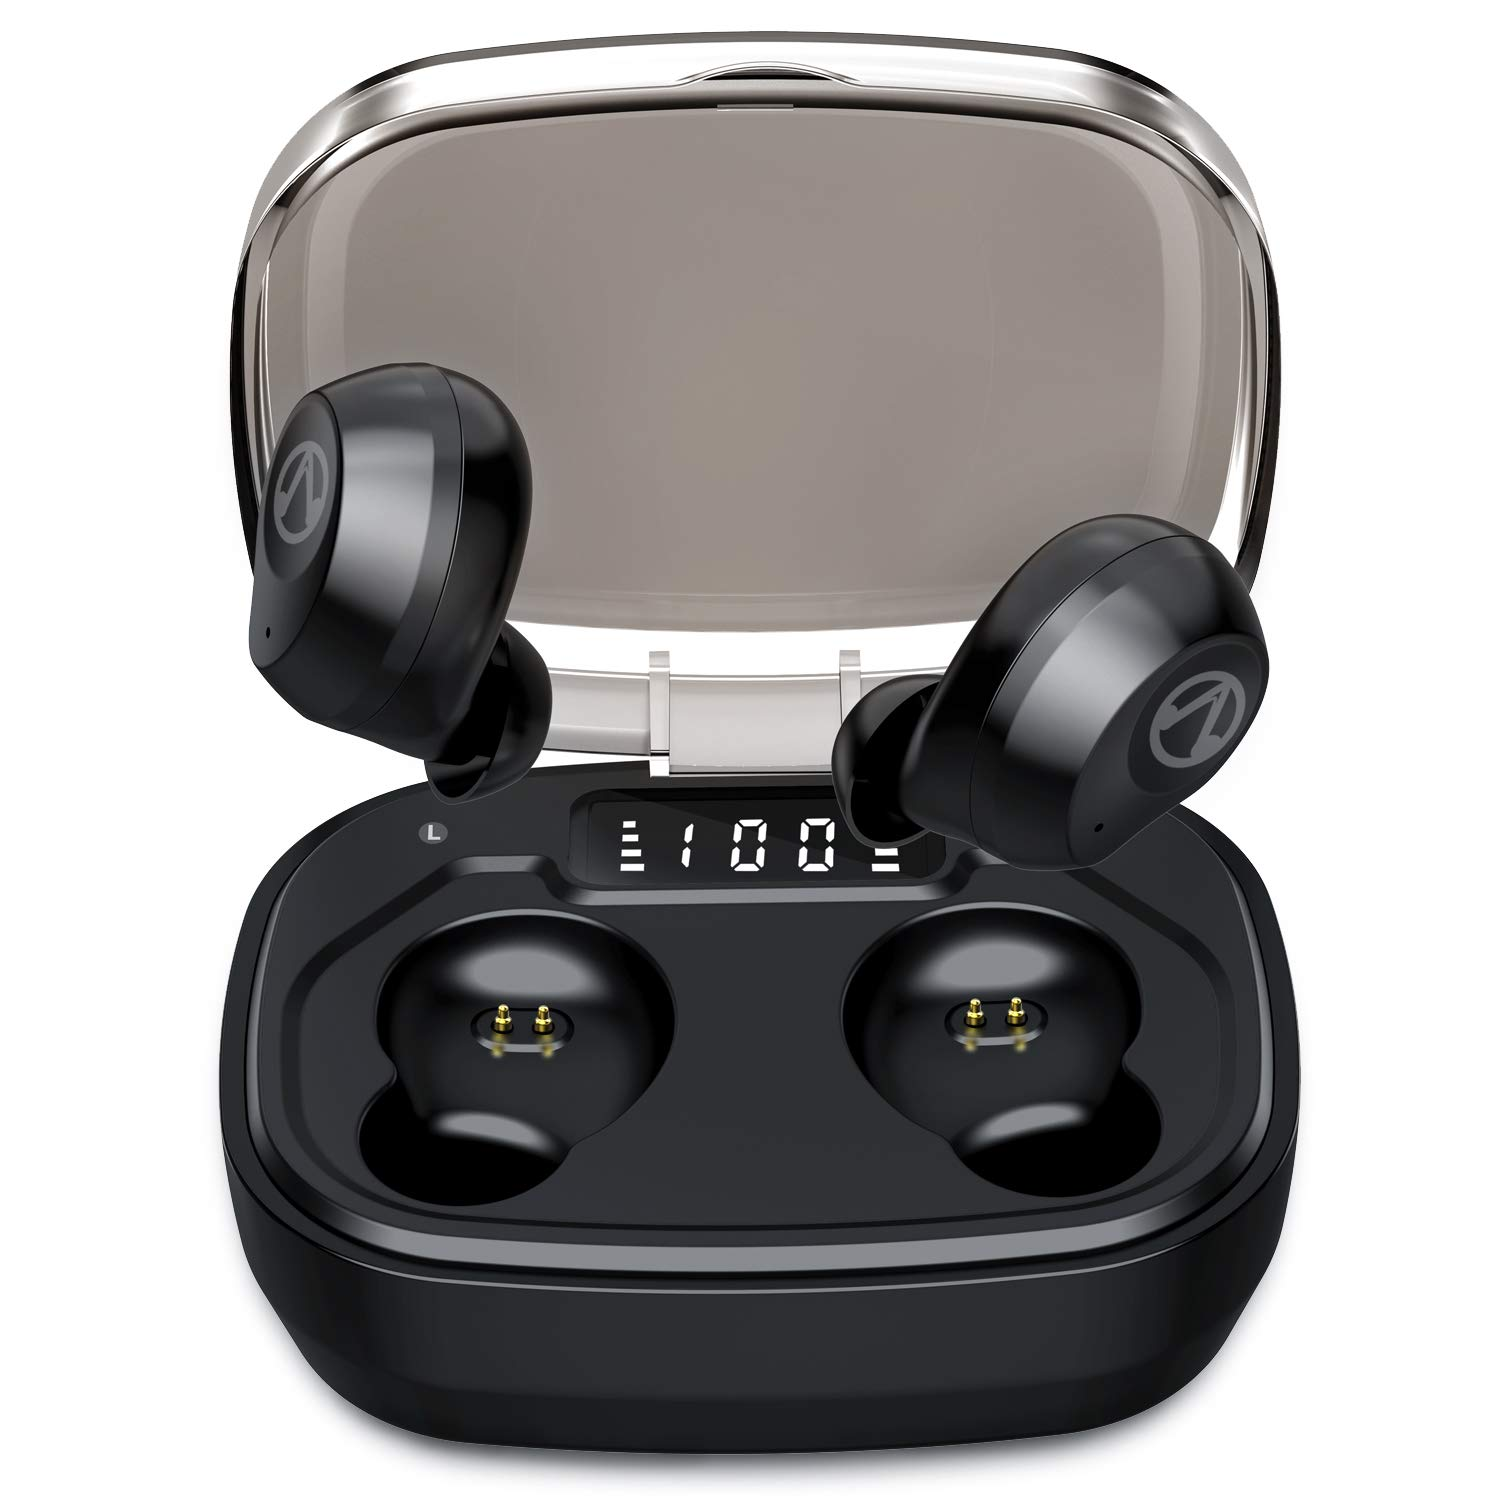 U-ROK Bluetooth 5.0 Wireless Earbuds with 1600mAh Portable Charging Case, Touch Control in-Ear Earphones Built-in Mic HD Stereo Sound IP67 Waterproof Headphones for Running Sports